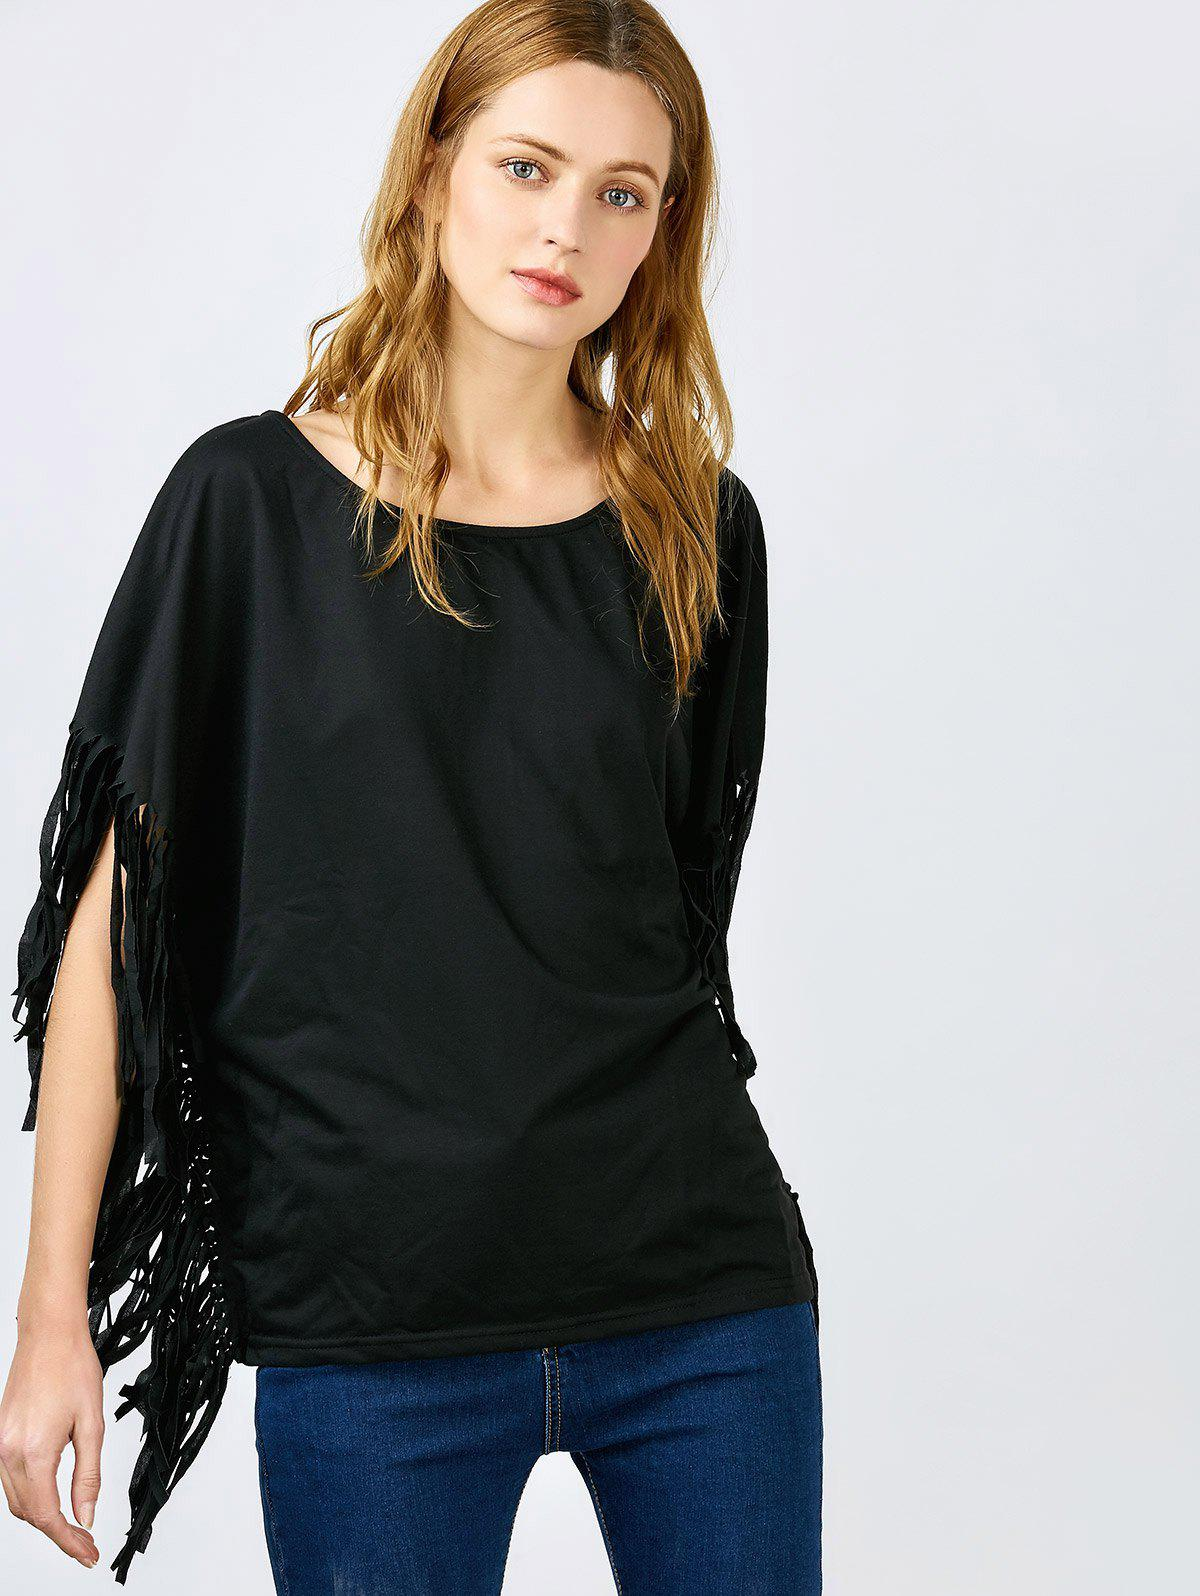 Affordable Stylish Skew Neck Short Sleeve Fringed Women's Black Blouse